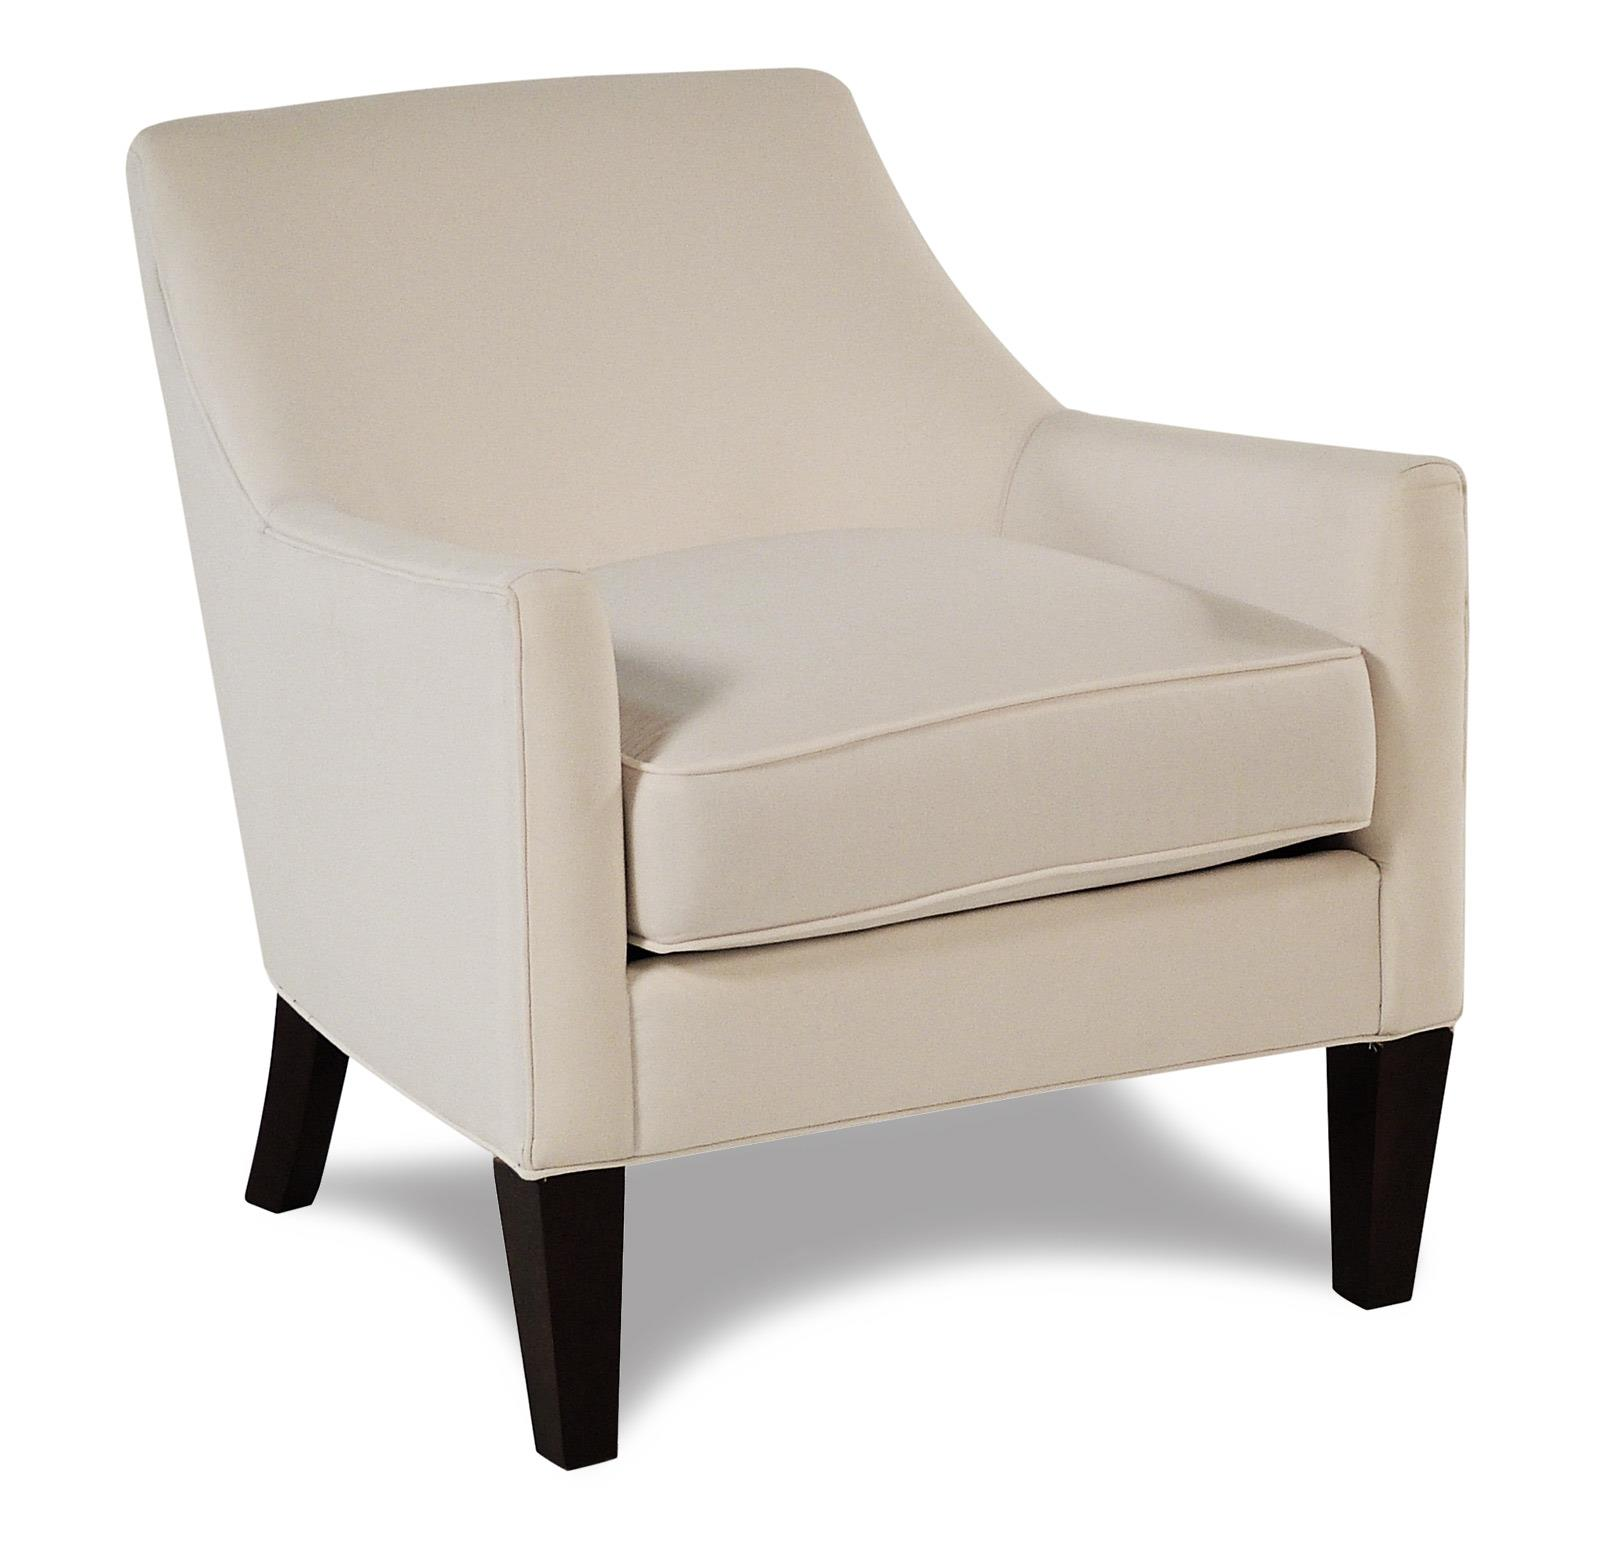 Broyhill Furniture Accent Chairs and Ottomans  Bucket Lounge Chair - Item Number: S9029-0-5404-0000